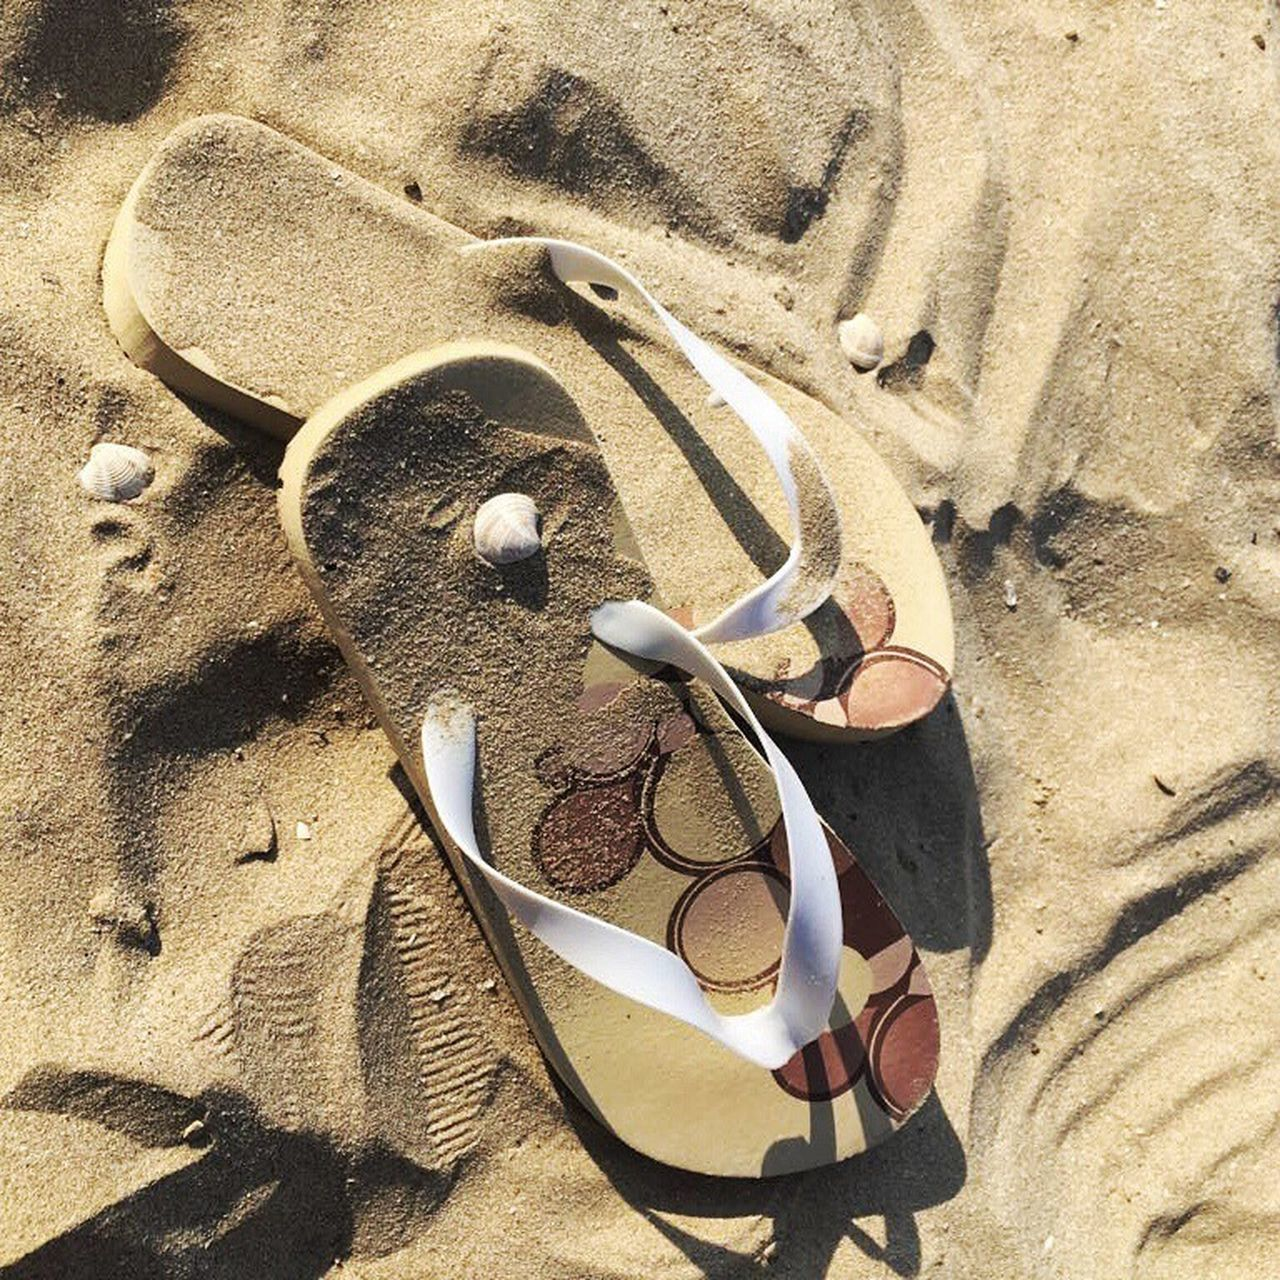 Beach Sand High Angle View Sunlight Vacations Outdoors Summer No People Nature Marche Fano Italy Tranquility Relaxation Pesaro Urbino